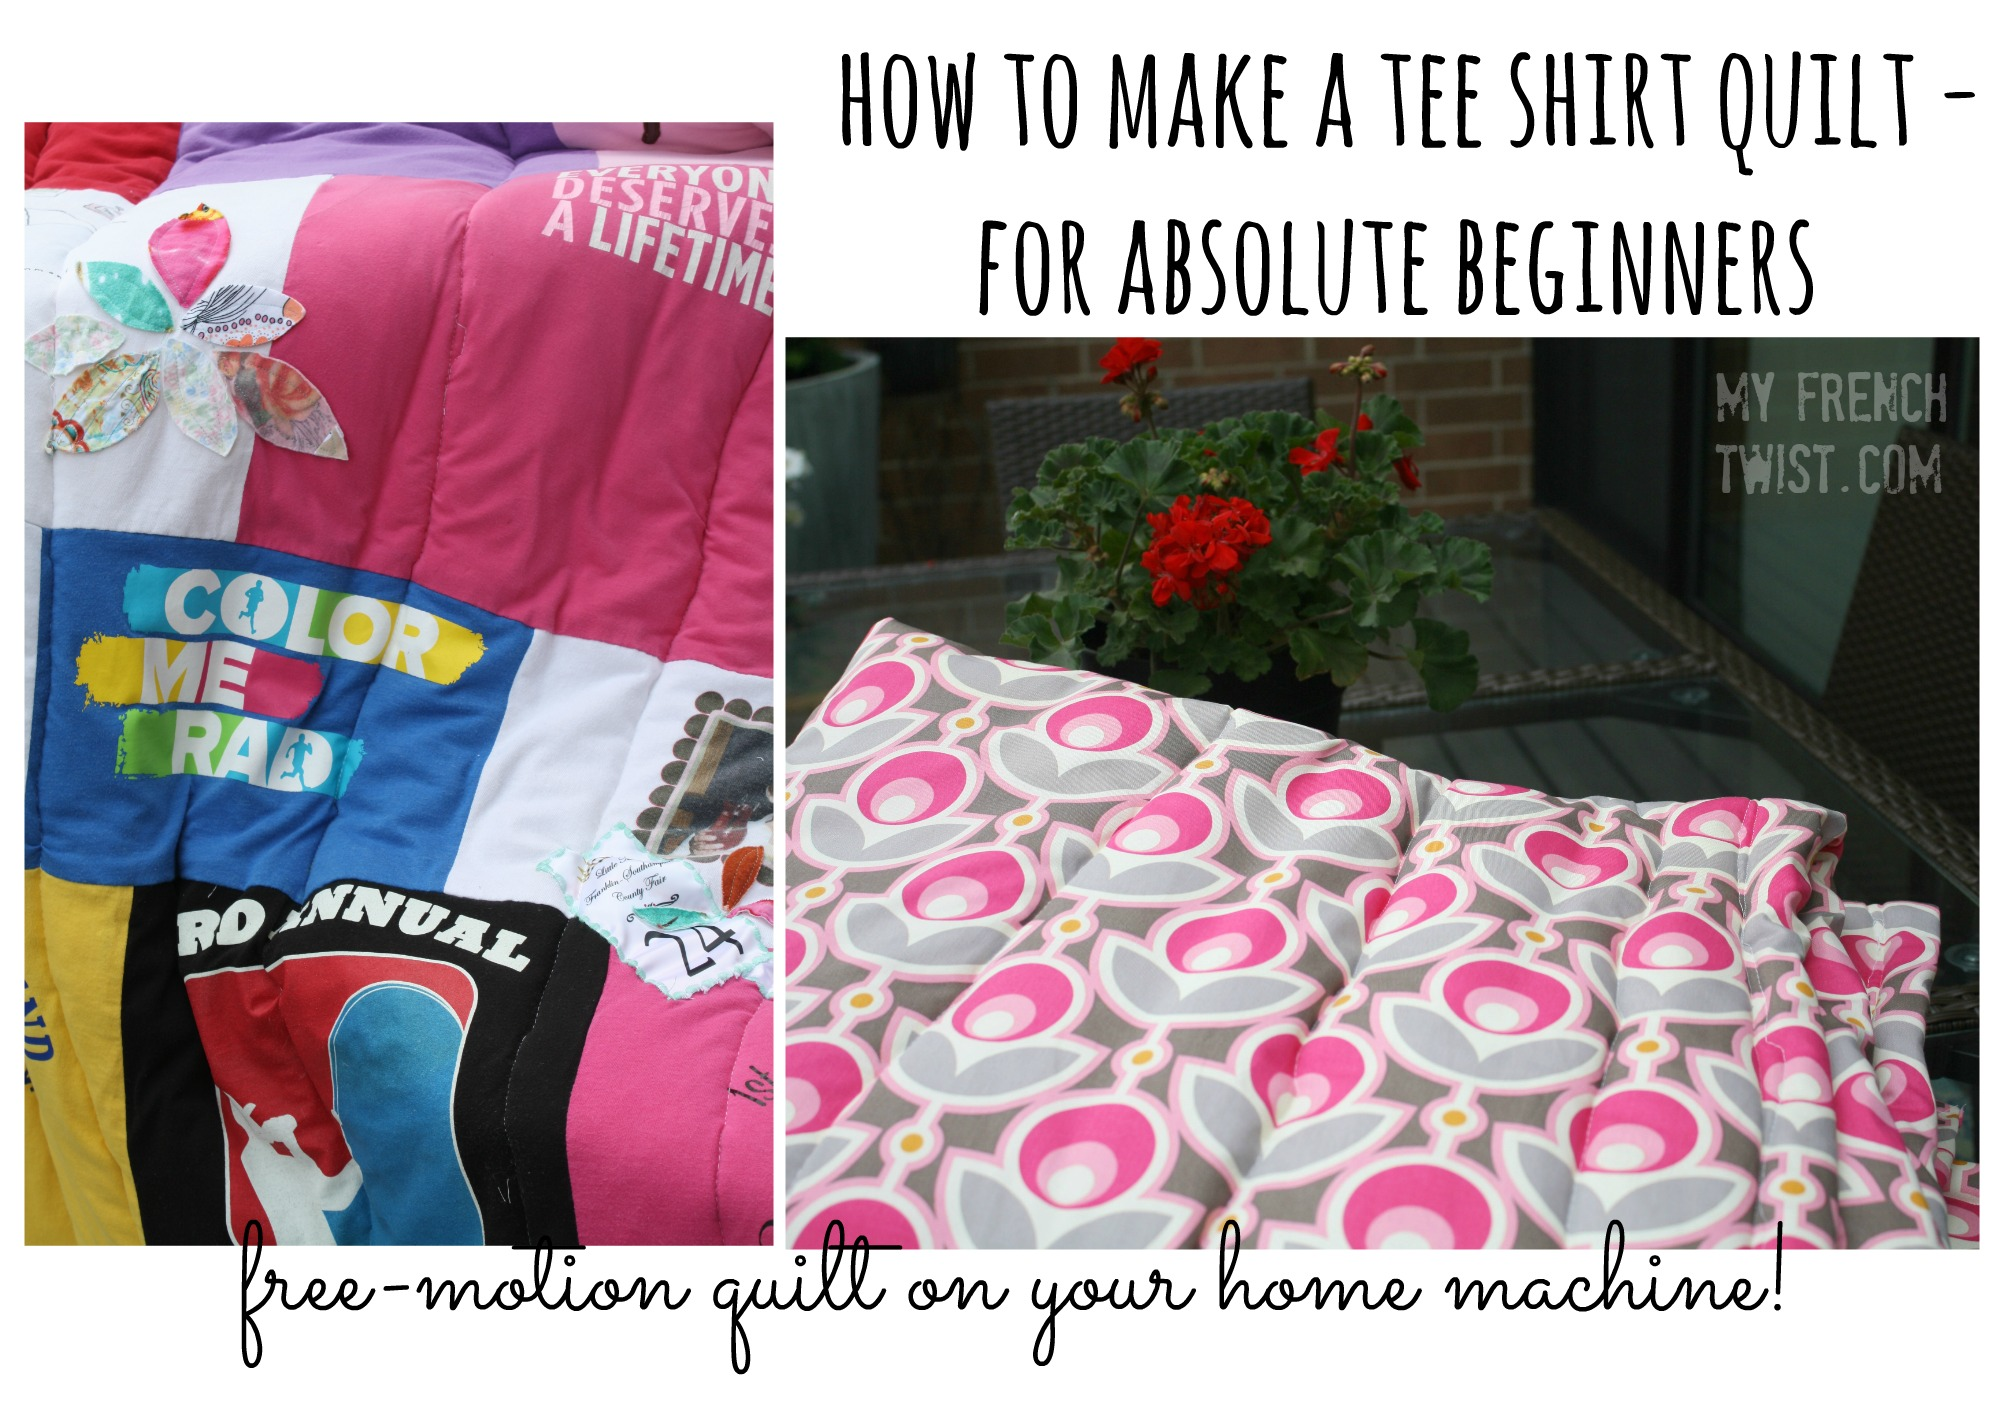 tee shirt quilt for beginners - my french twist